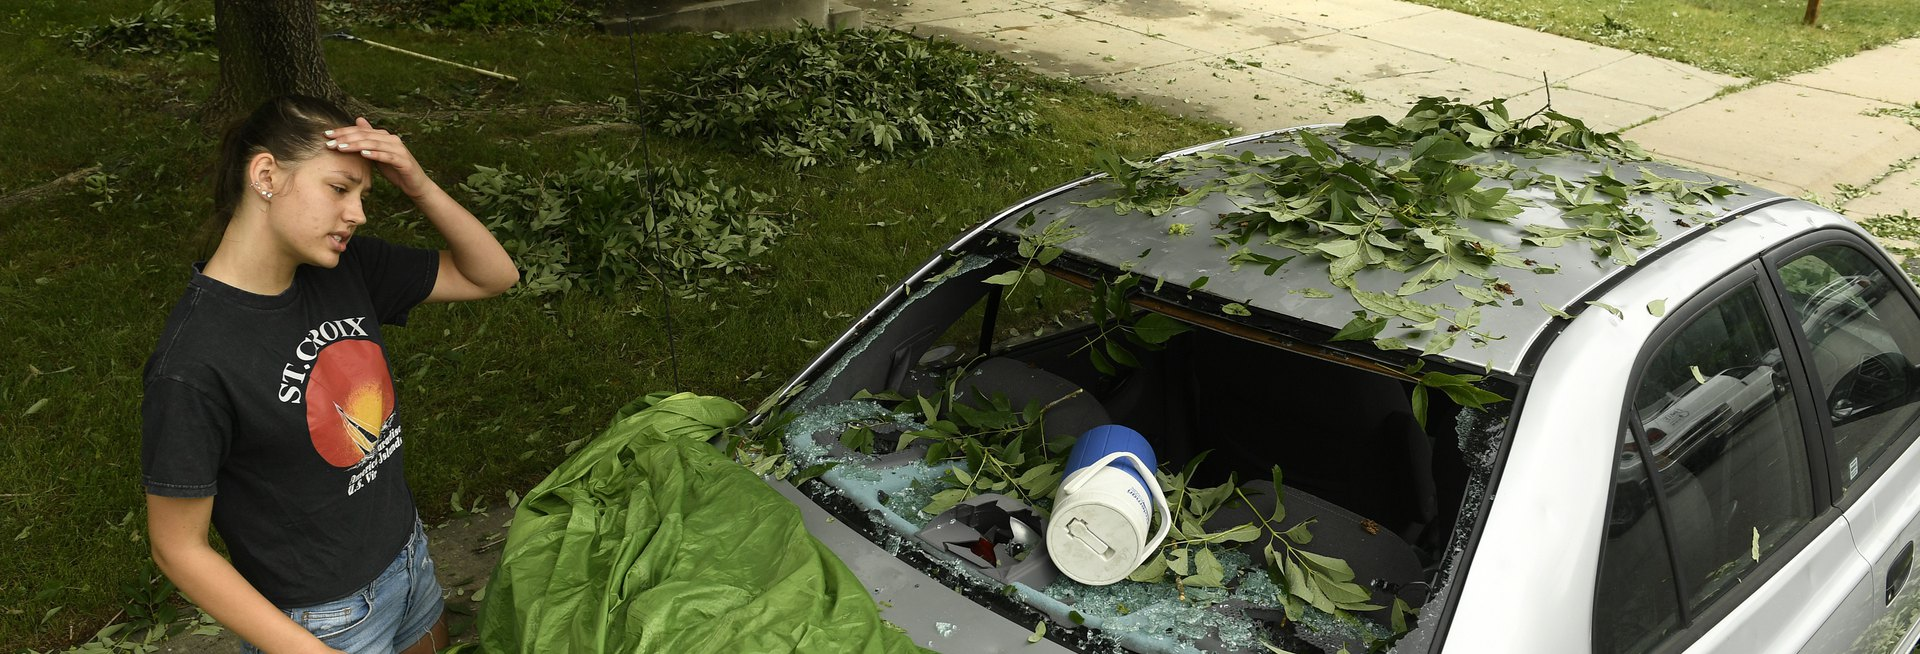 3 Tips For Recovering From Hail Damage Faster